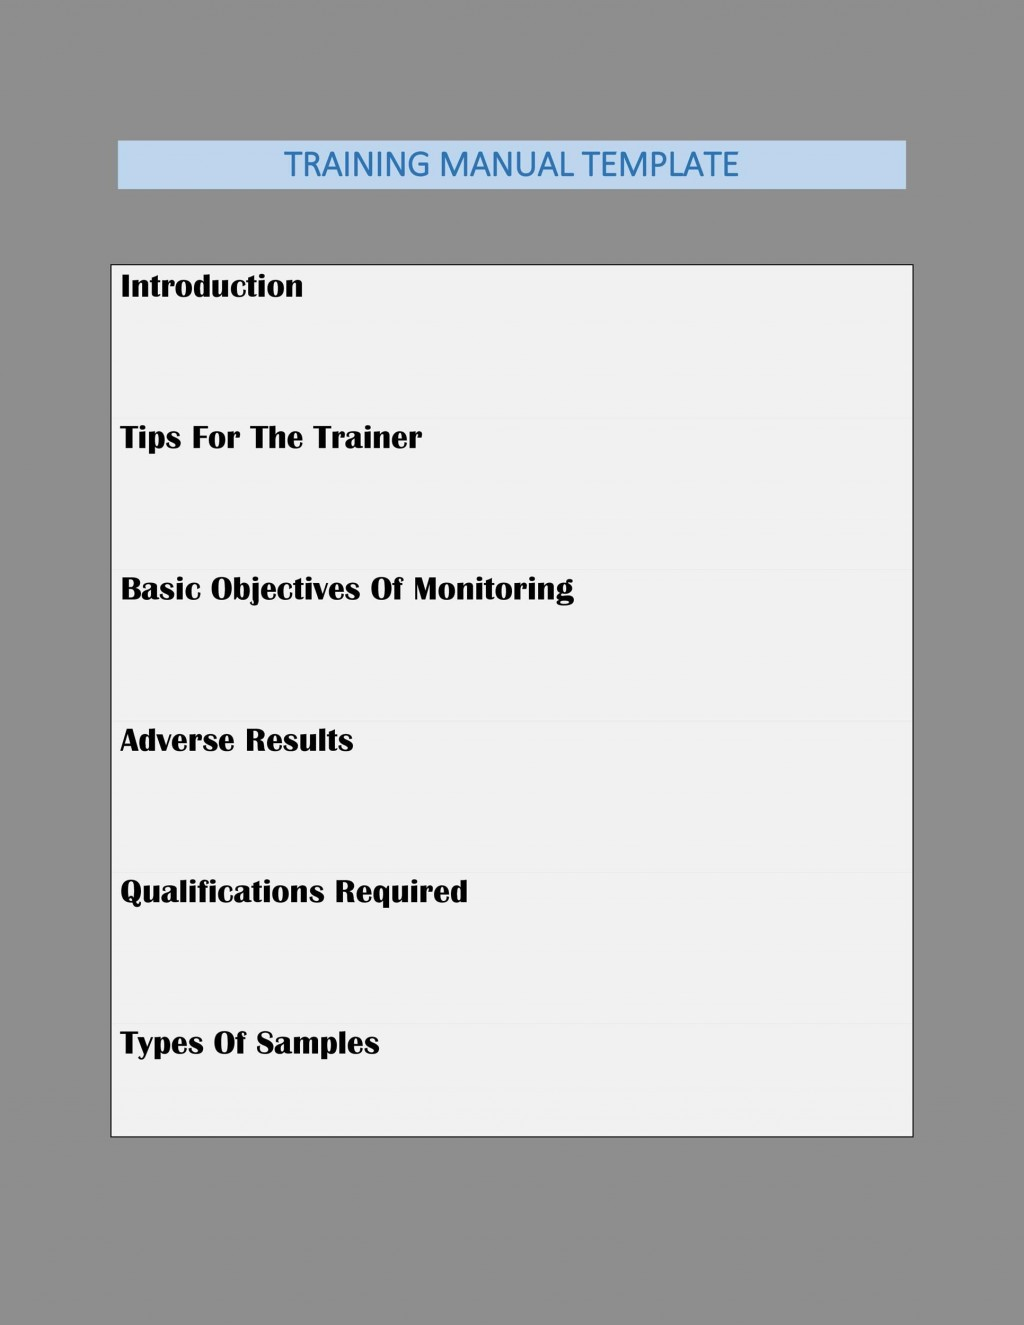 007 Surprising Employee Training Manual Template High Def  New Hire ExampleLarge